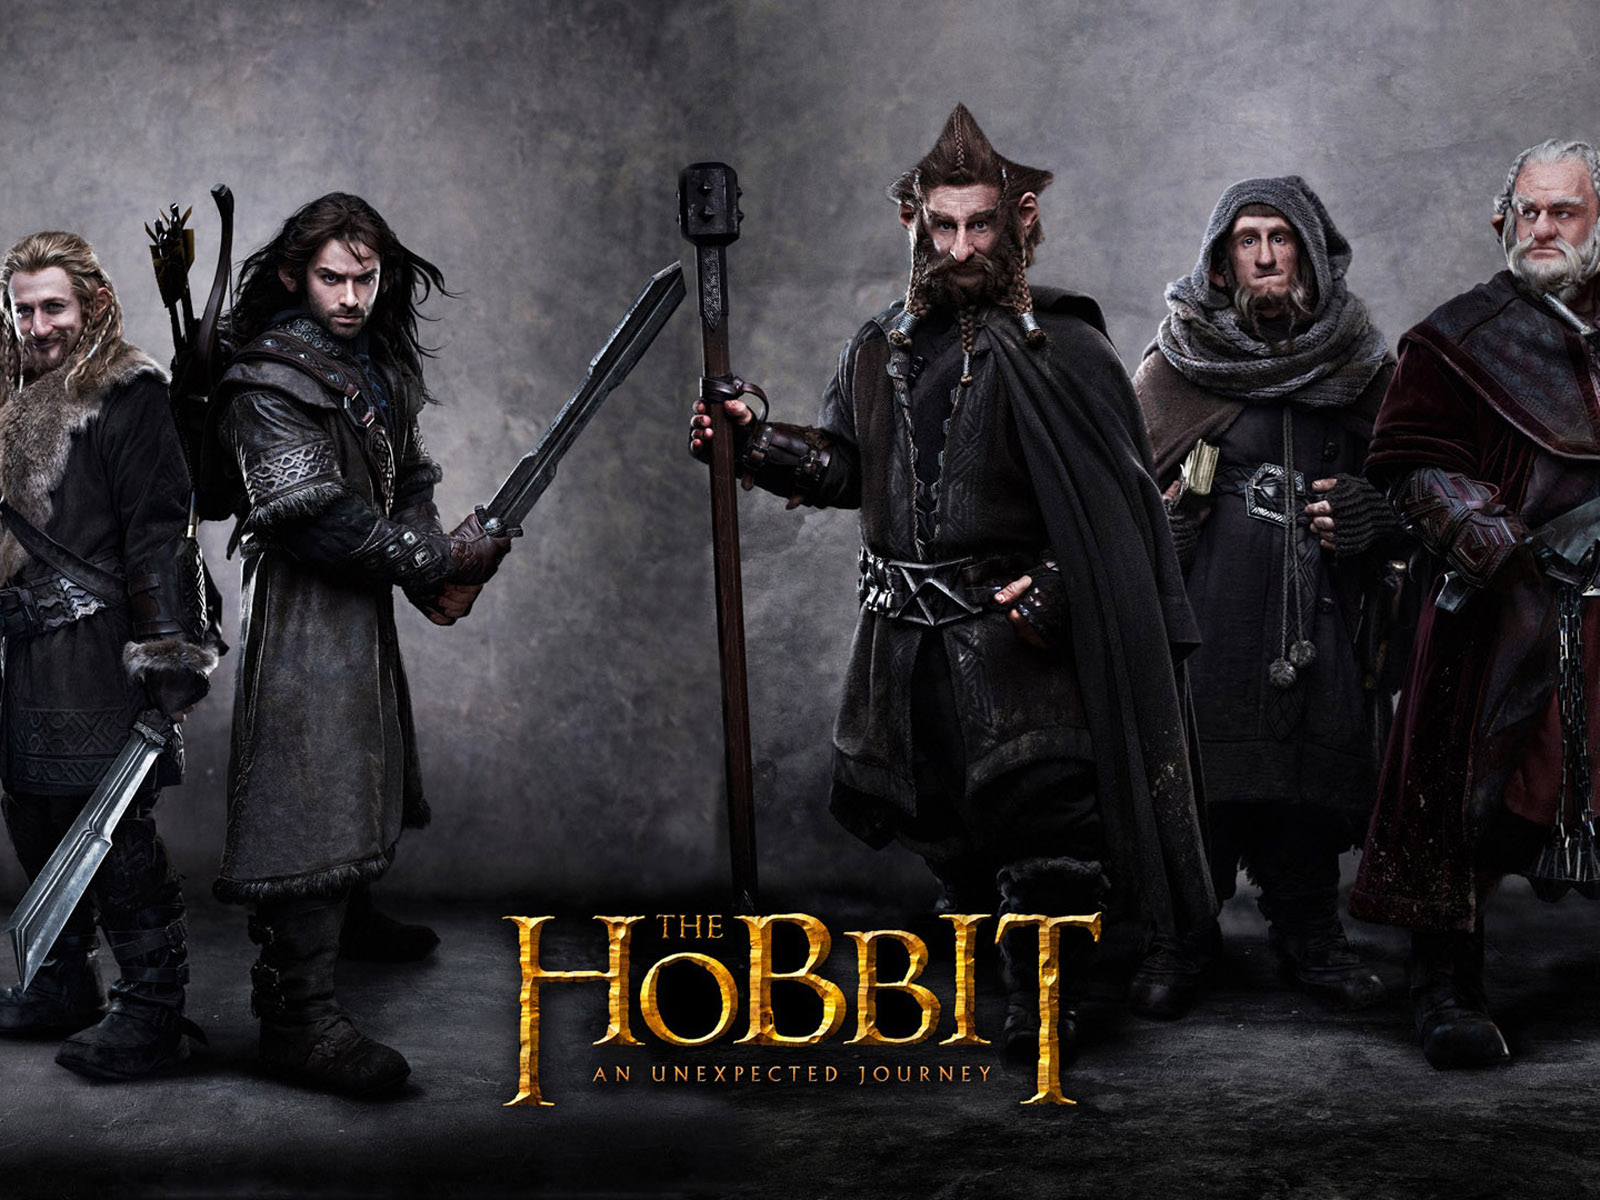 The Hobbit Wallpaper 1600x1200 Wallpapers 1600x1200 Wallpapers 1600x1200